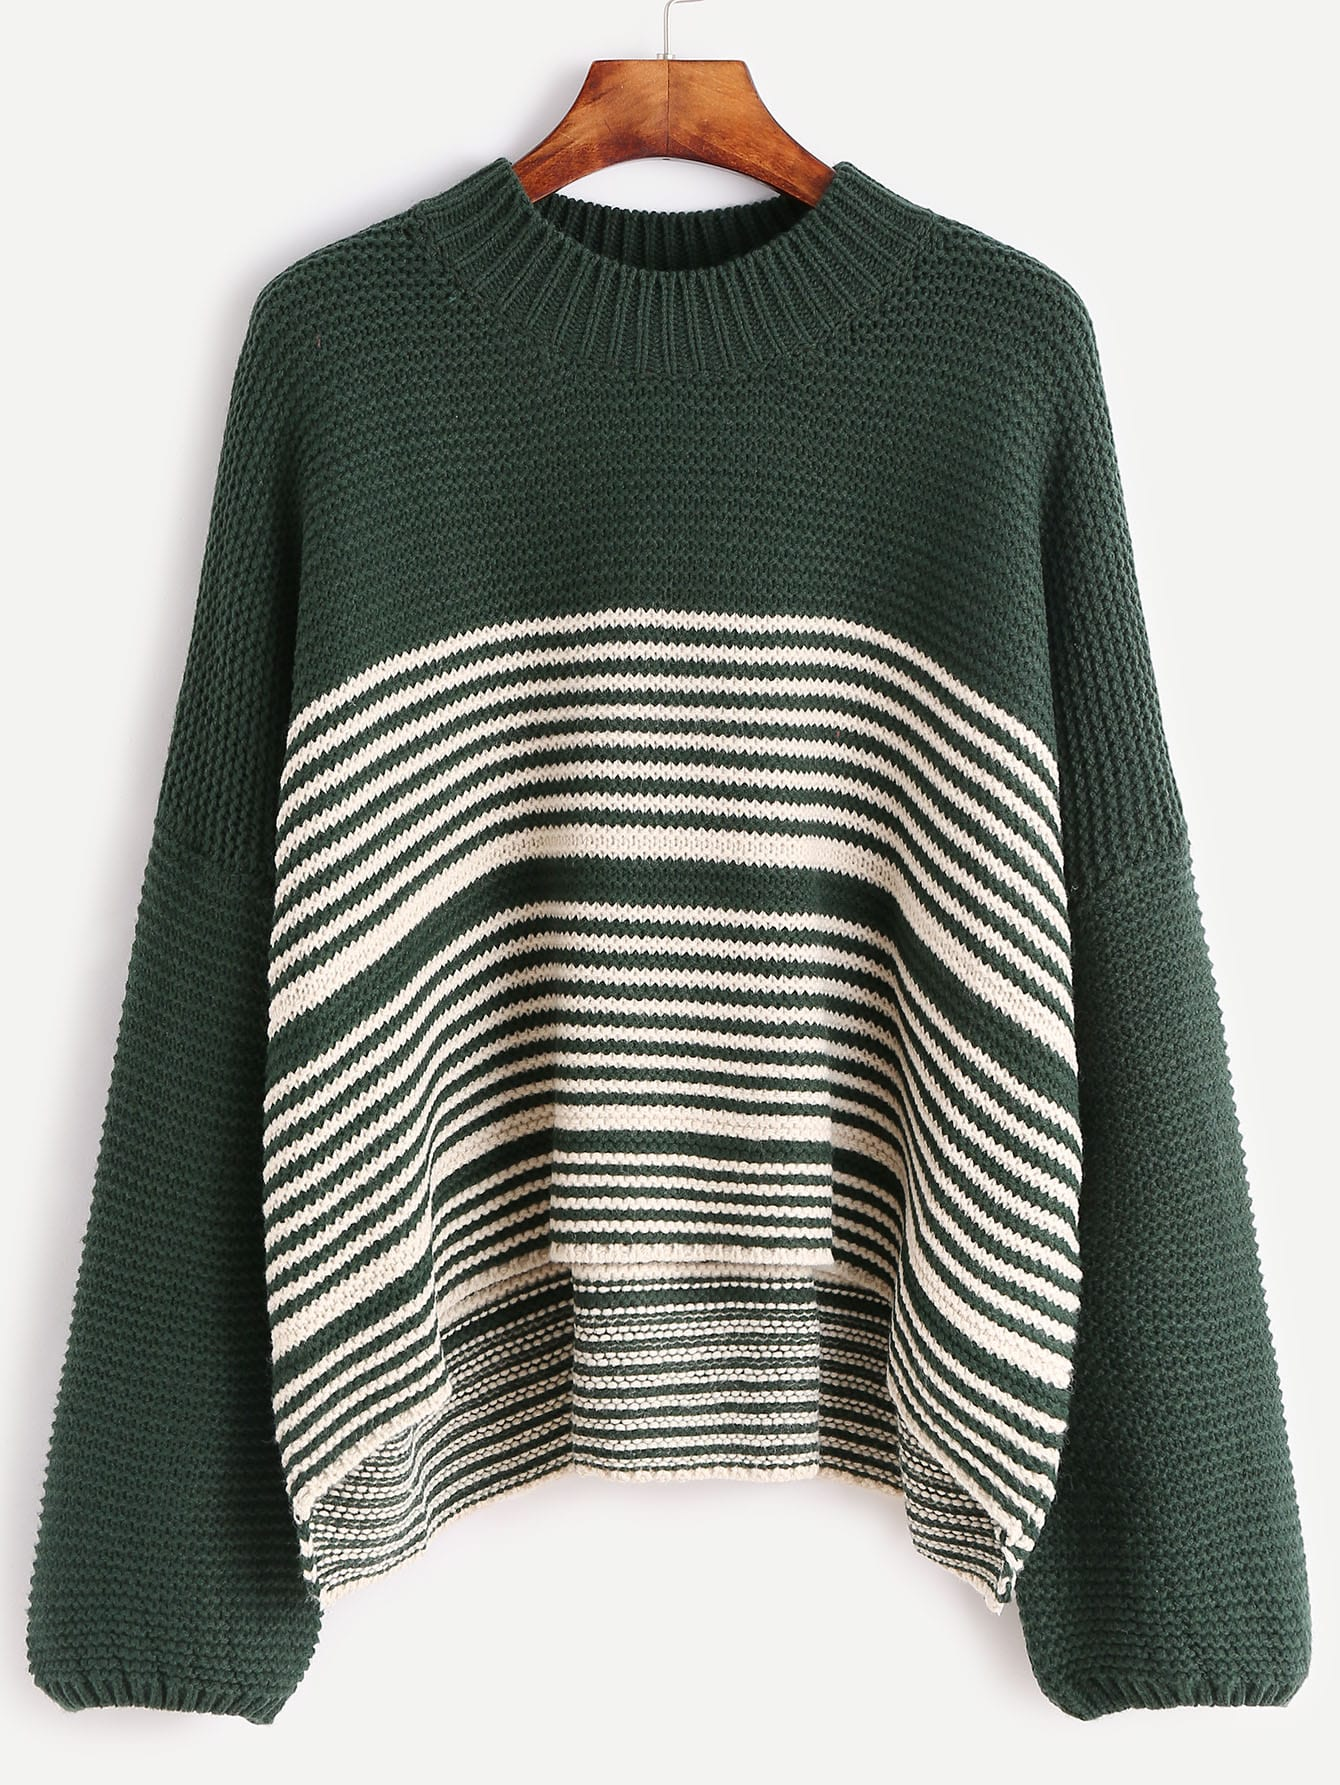 Green Contrast Striped Drop Shoulder SweaterGreen Contrast Striped Drop Shoulder Sweater<br><br>color: Green<br>size: one-size